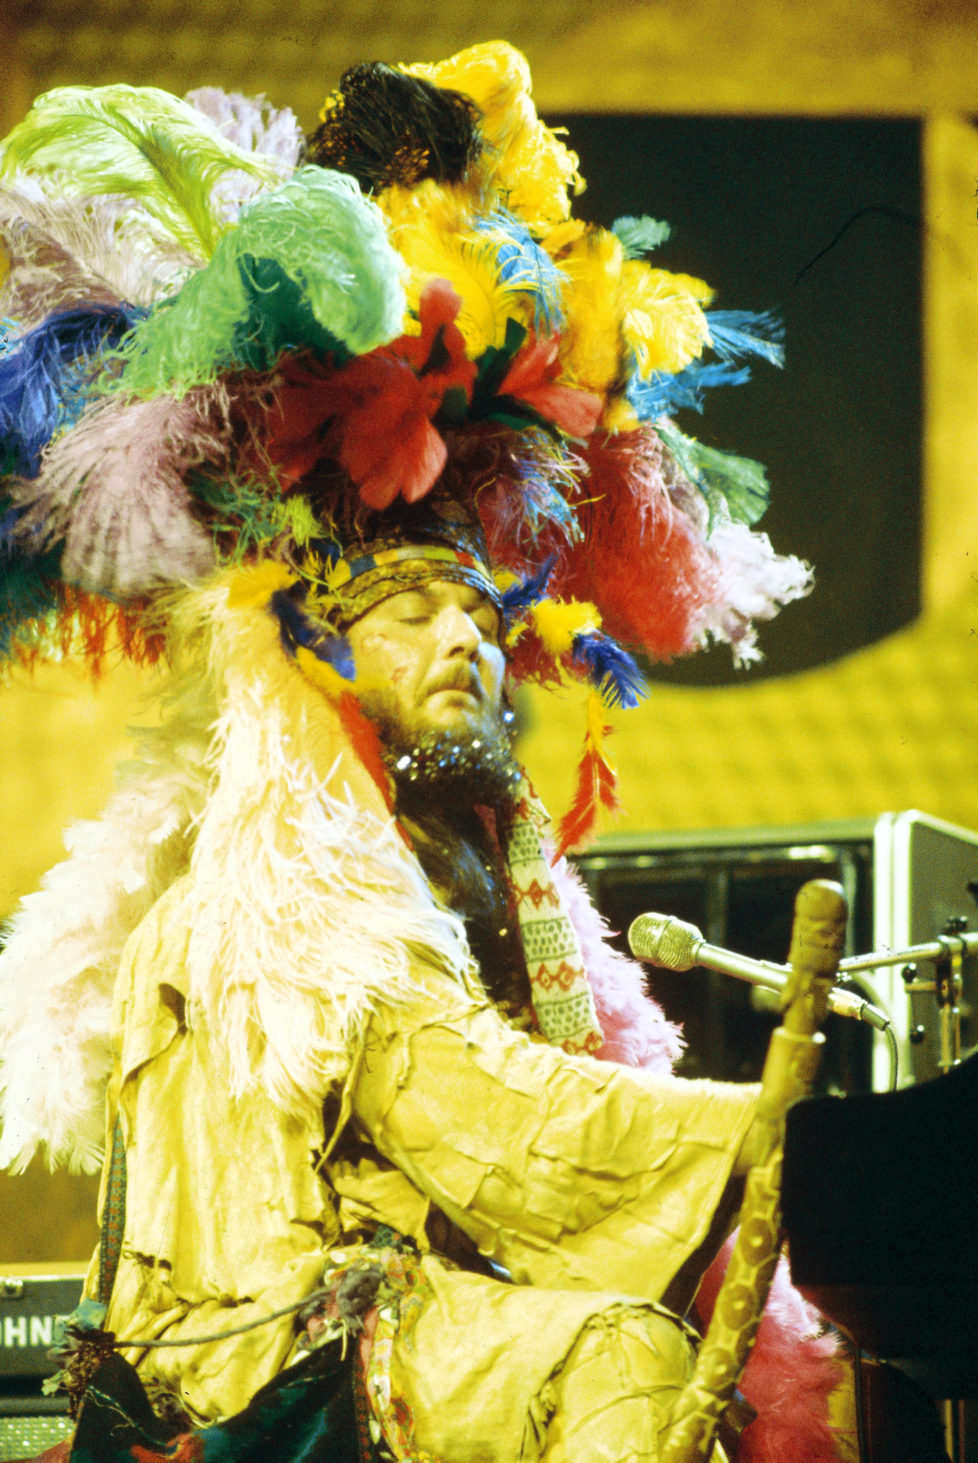 MONTREUX, SWITZERLAND - 1st JULY: American musician Dr. John performs live on stage at the Montreux Jazz Festival in Montreux, Switzerland in July 1973. (Photo by David Warner Ellis/Redferns)